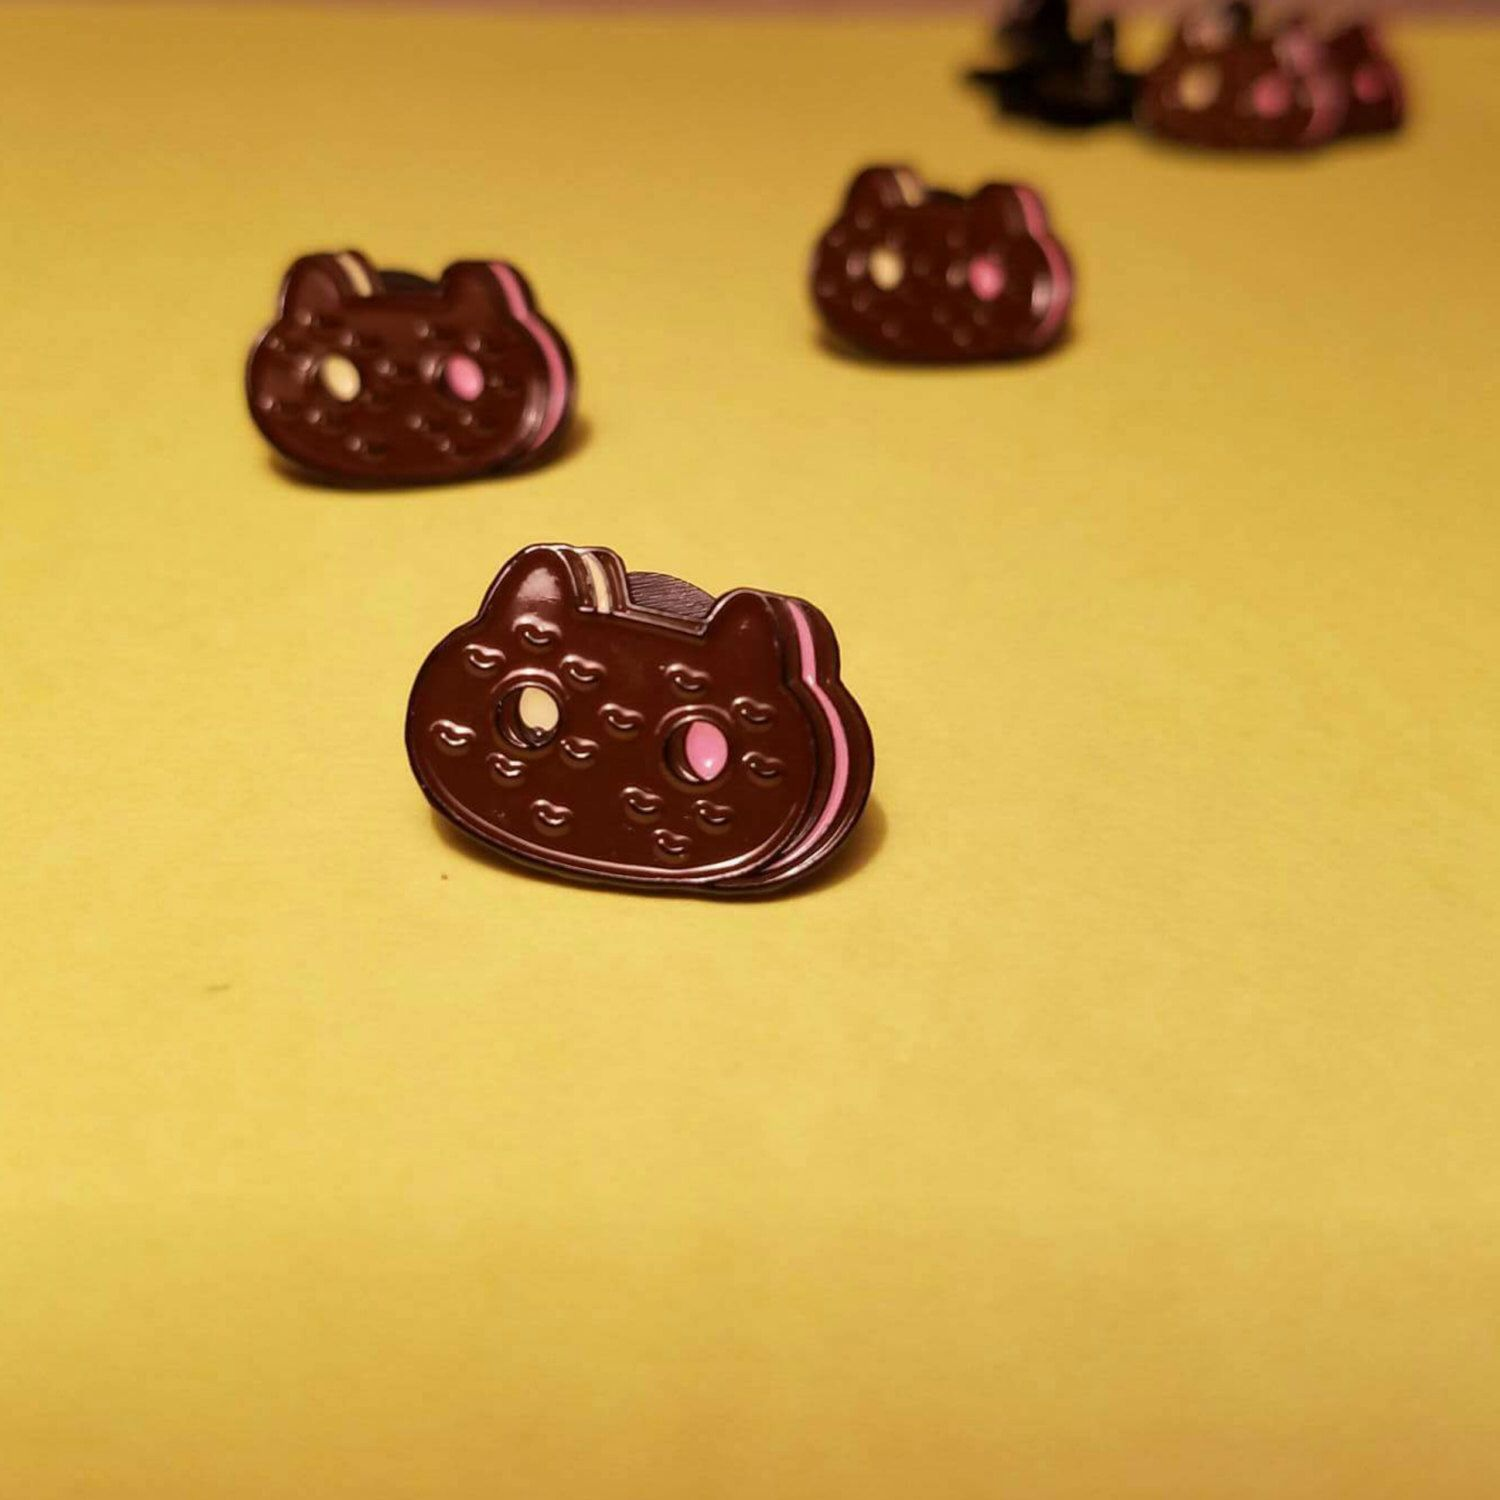 Steven Universe Cookie Cat Enamel Pin By GarbageHumans On